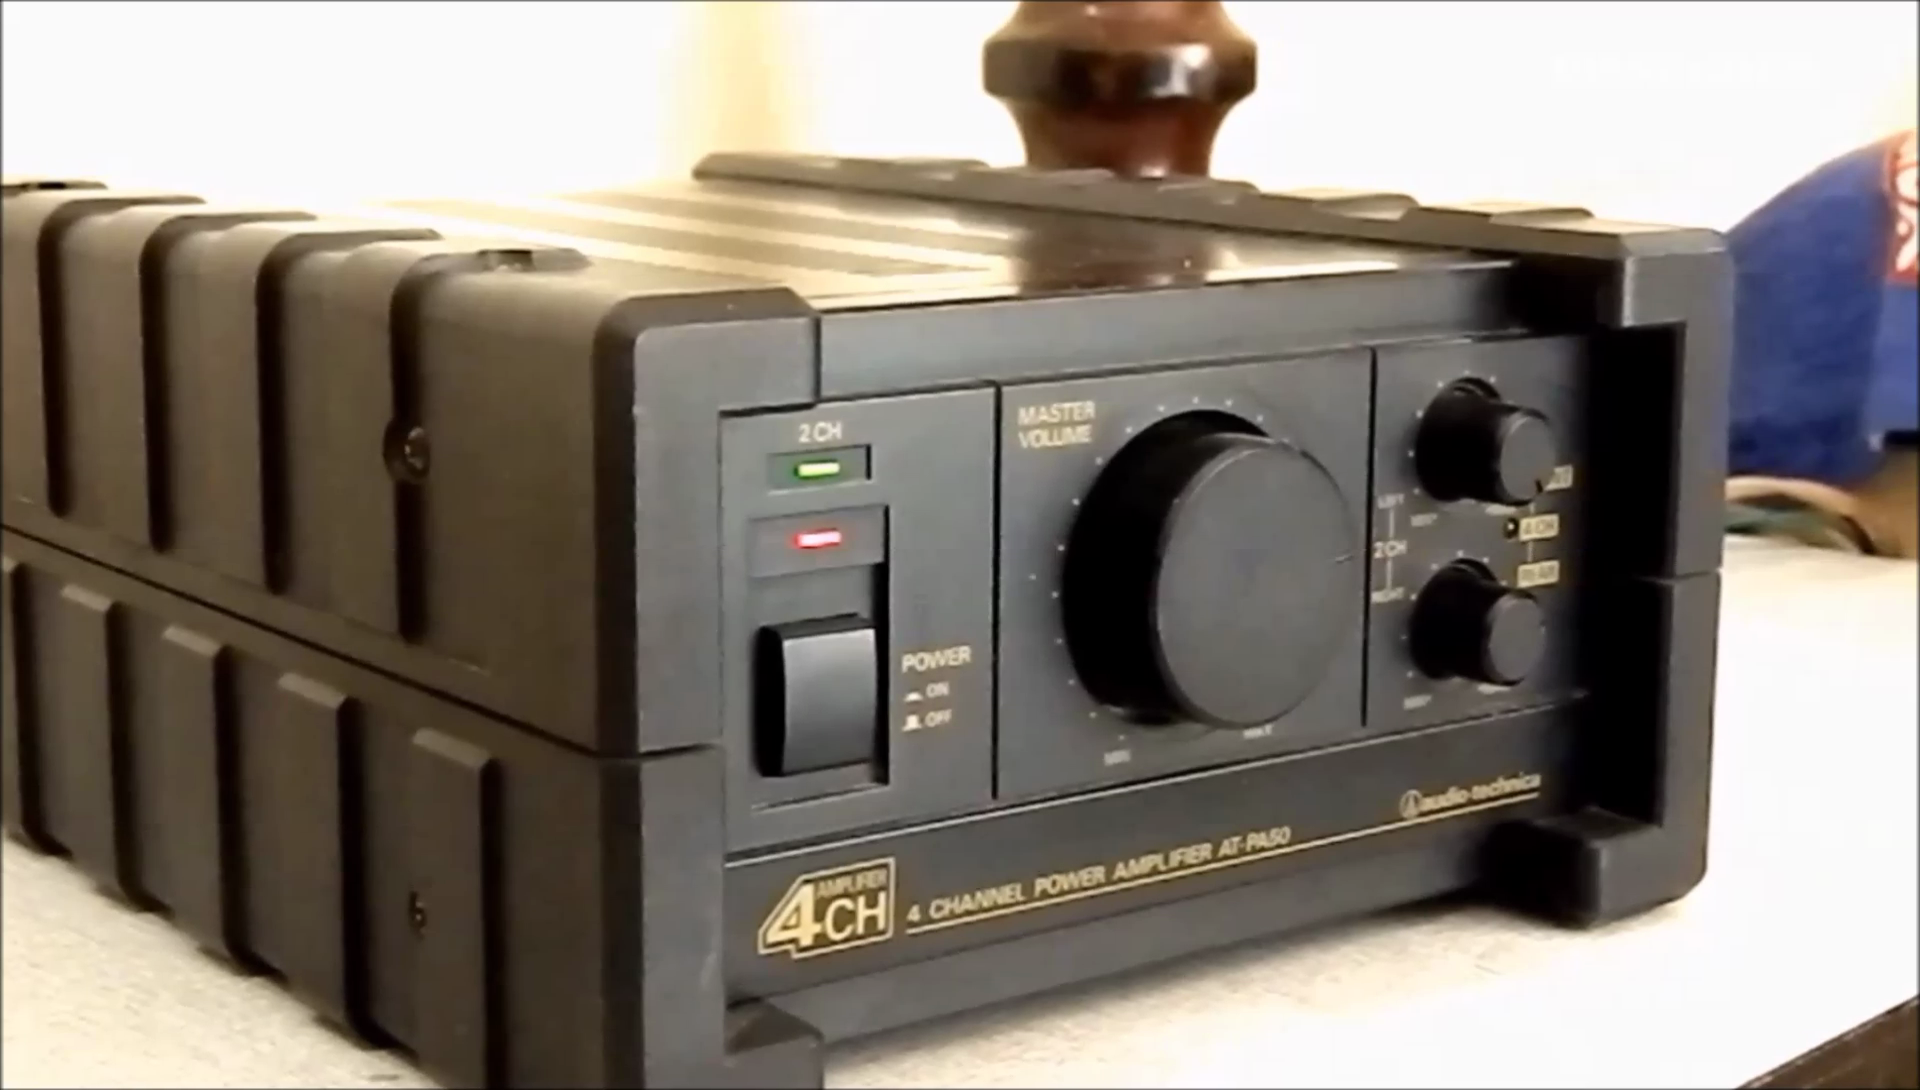 Audio Technica At Pa50 4 Channel Power Amplifier Is A 50 Watt Compact Size With Out Put Of Rms Per